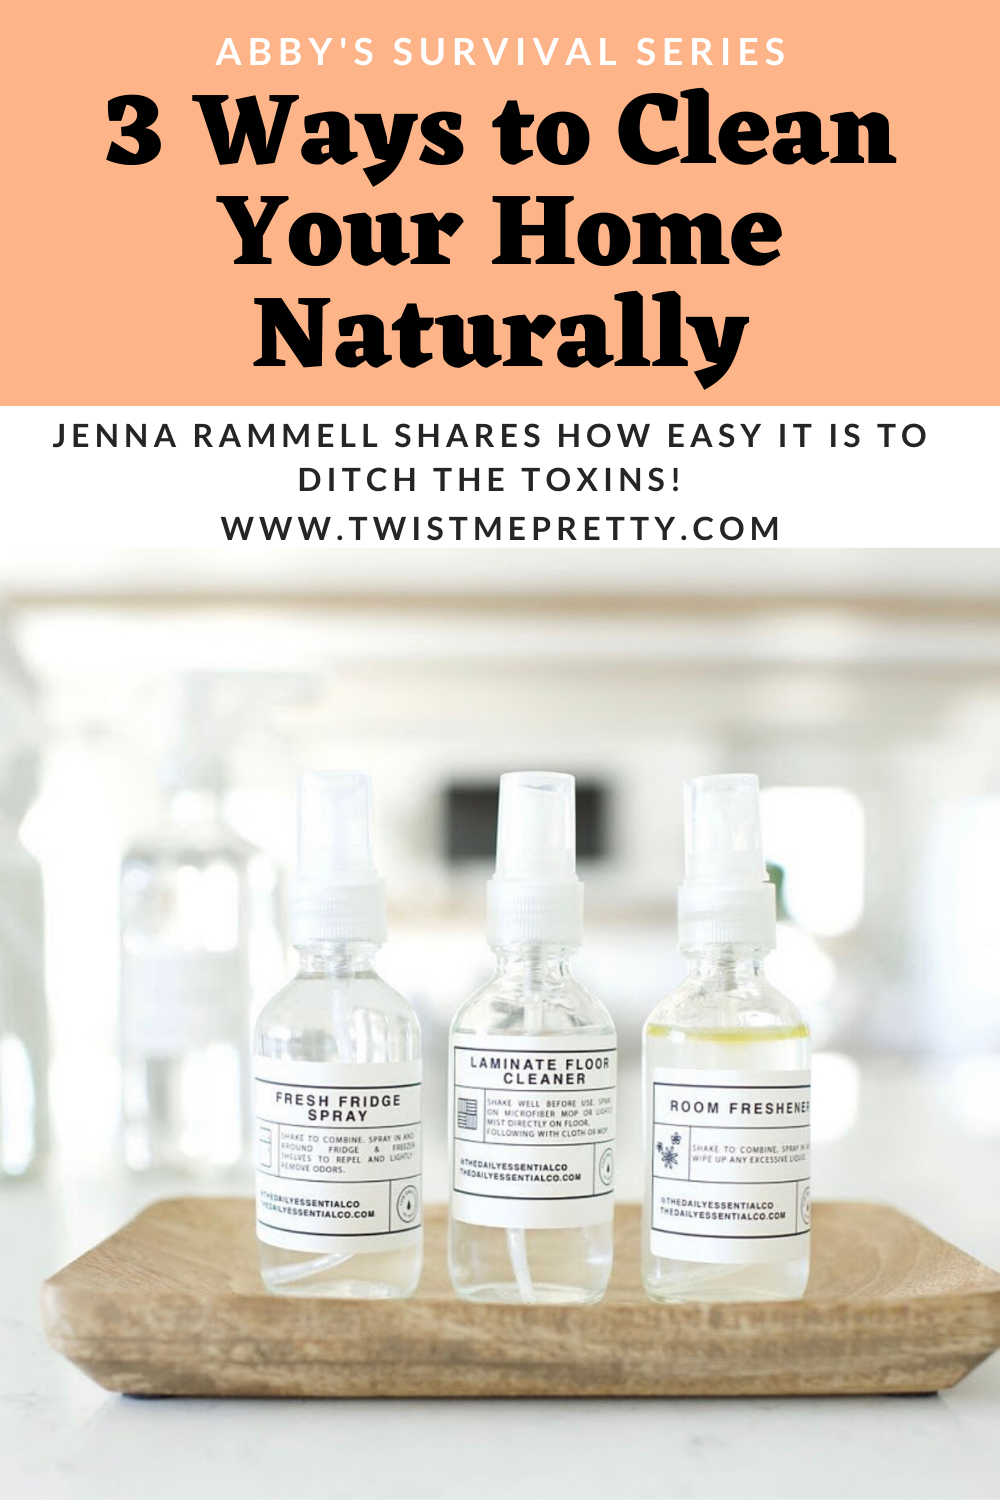 Abby's Survival Series- 3 Ways to Clean Your Home Naturally. Jenna Rammell shares how easy it is to ditch the toxins! www.TwistMePretty.com